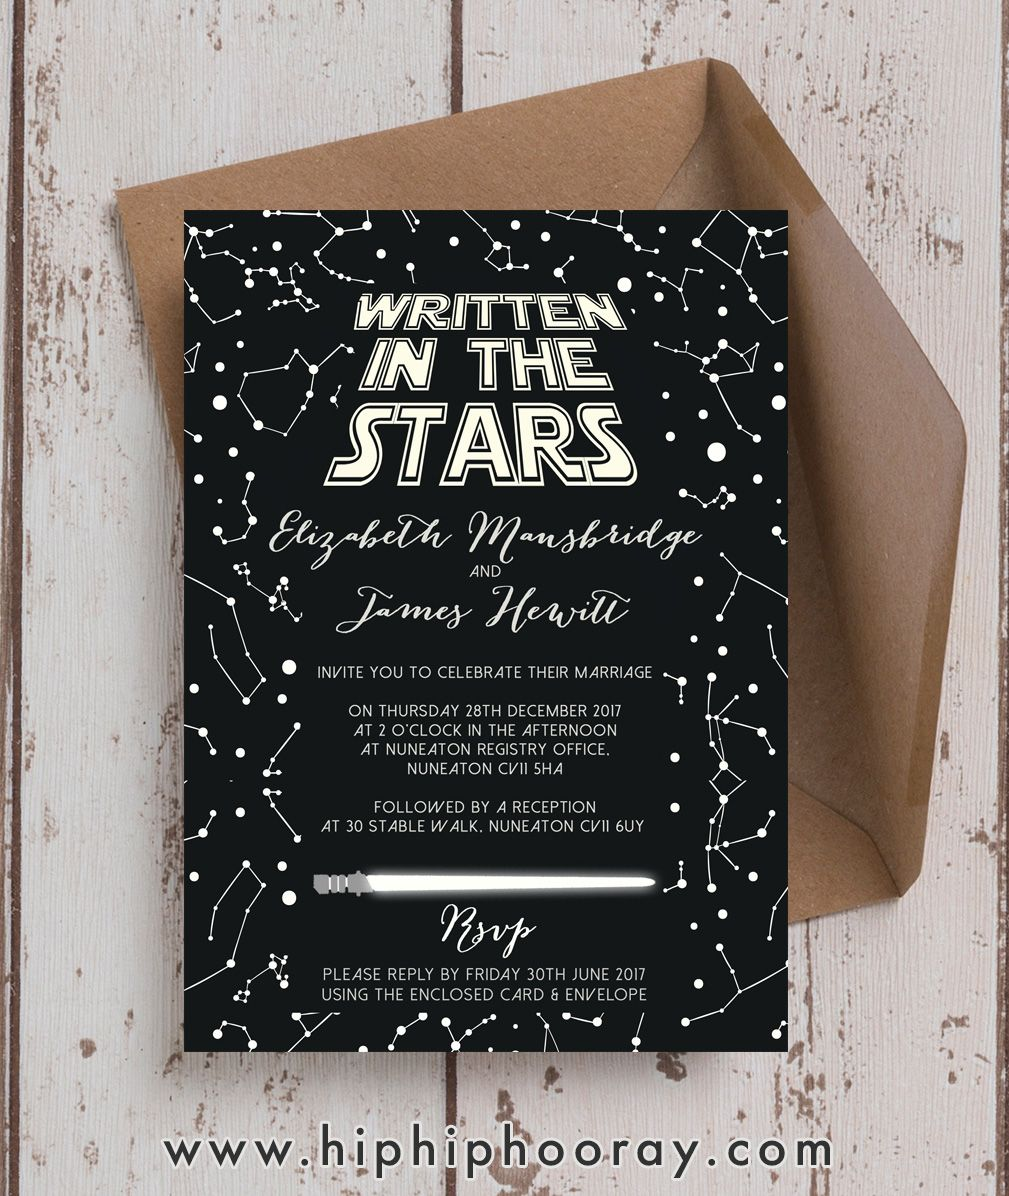 Amazing star wars themed inspired wedding invitations invites